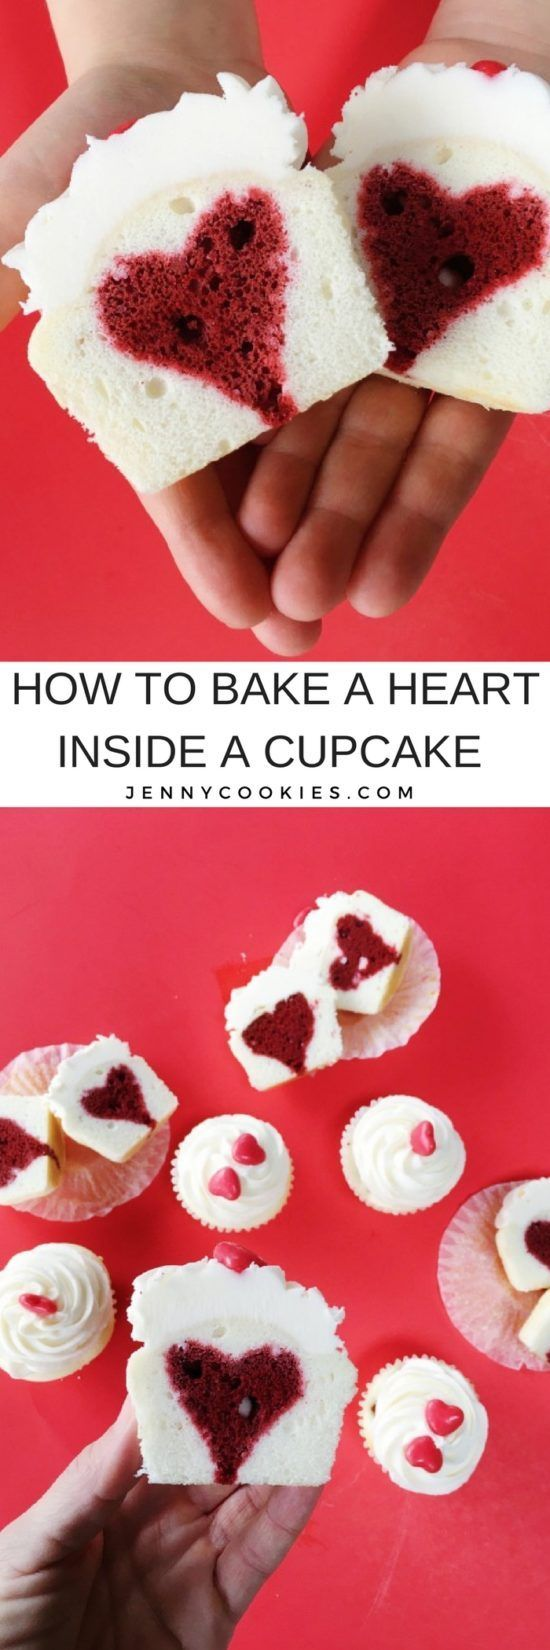 How to Bake a Heart Inside a Cupcake | heart cupcake tutorial | heart cupcake recipes | Valentine's Day cupcake recipes | easy cupcake tutorials | heart inspired dessert recipes || JennyCookies.com #heartcupcakes #valentinesday #caketips